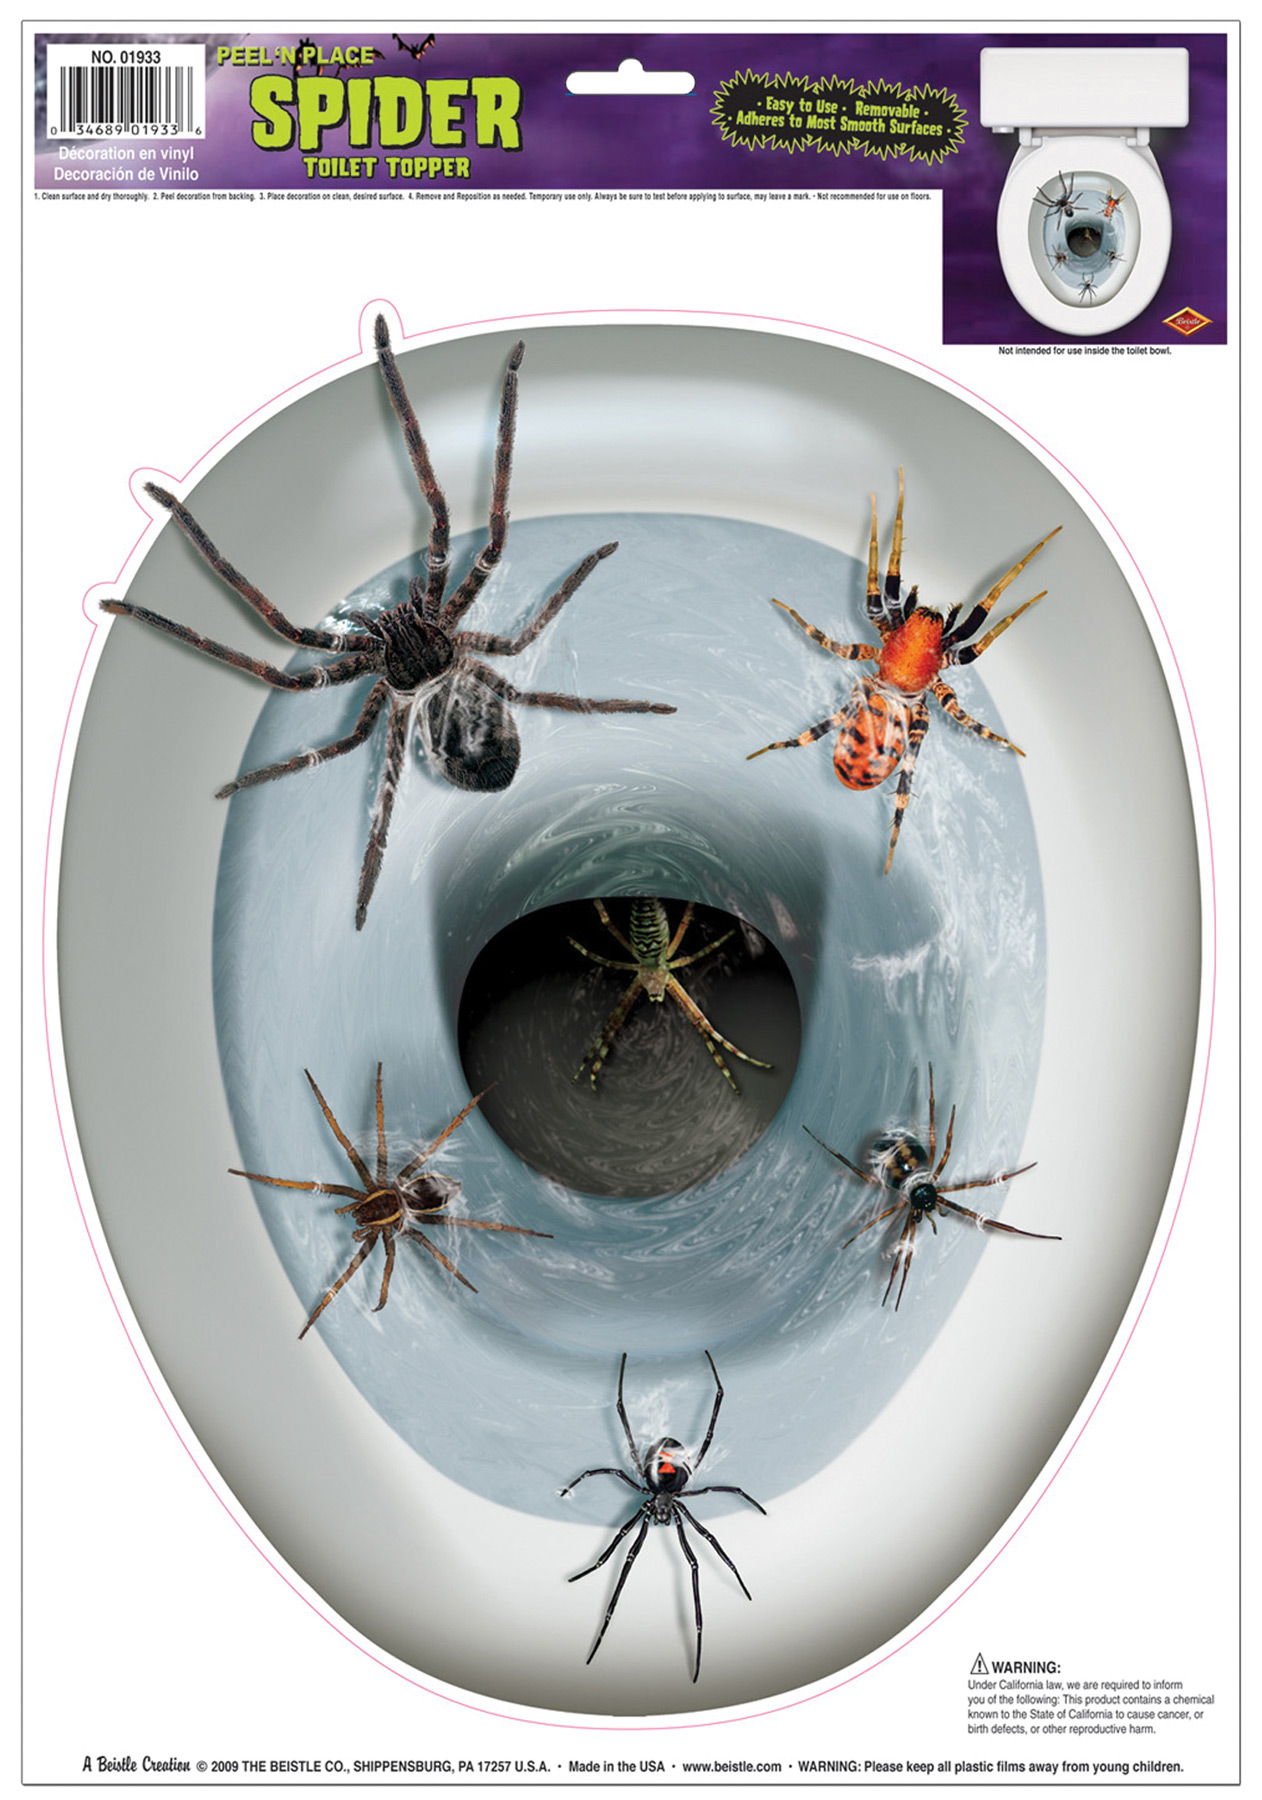 Featured Image for Spider Toilet Topper Peel N Pl